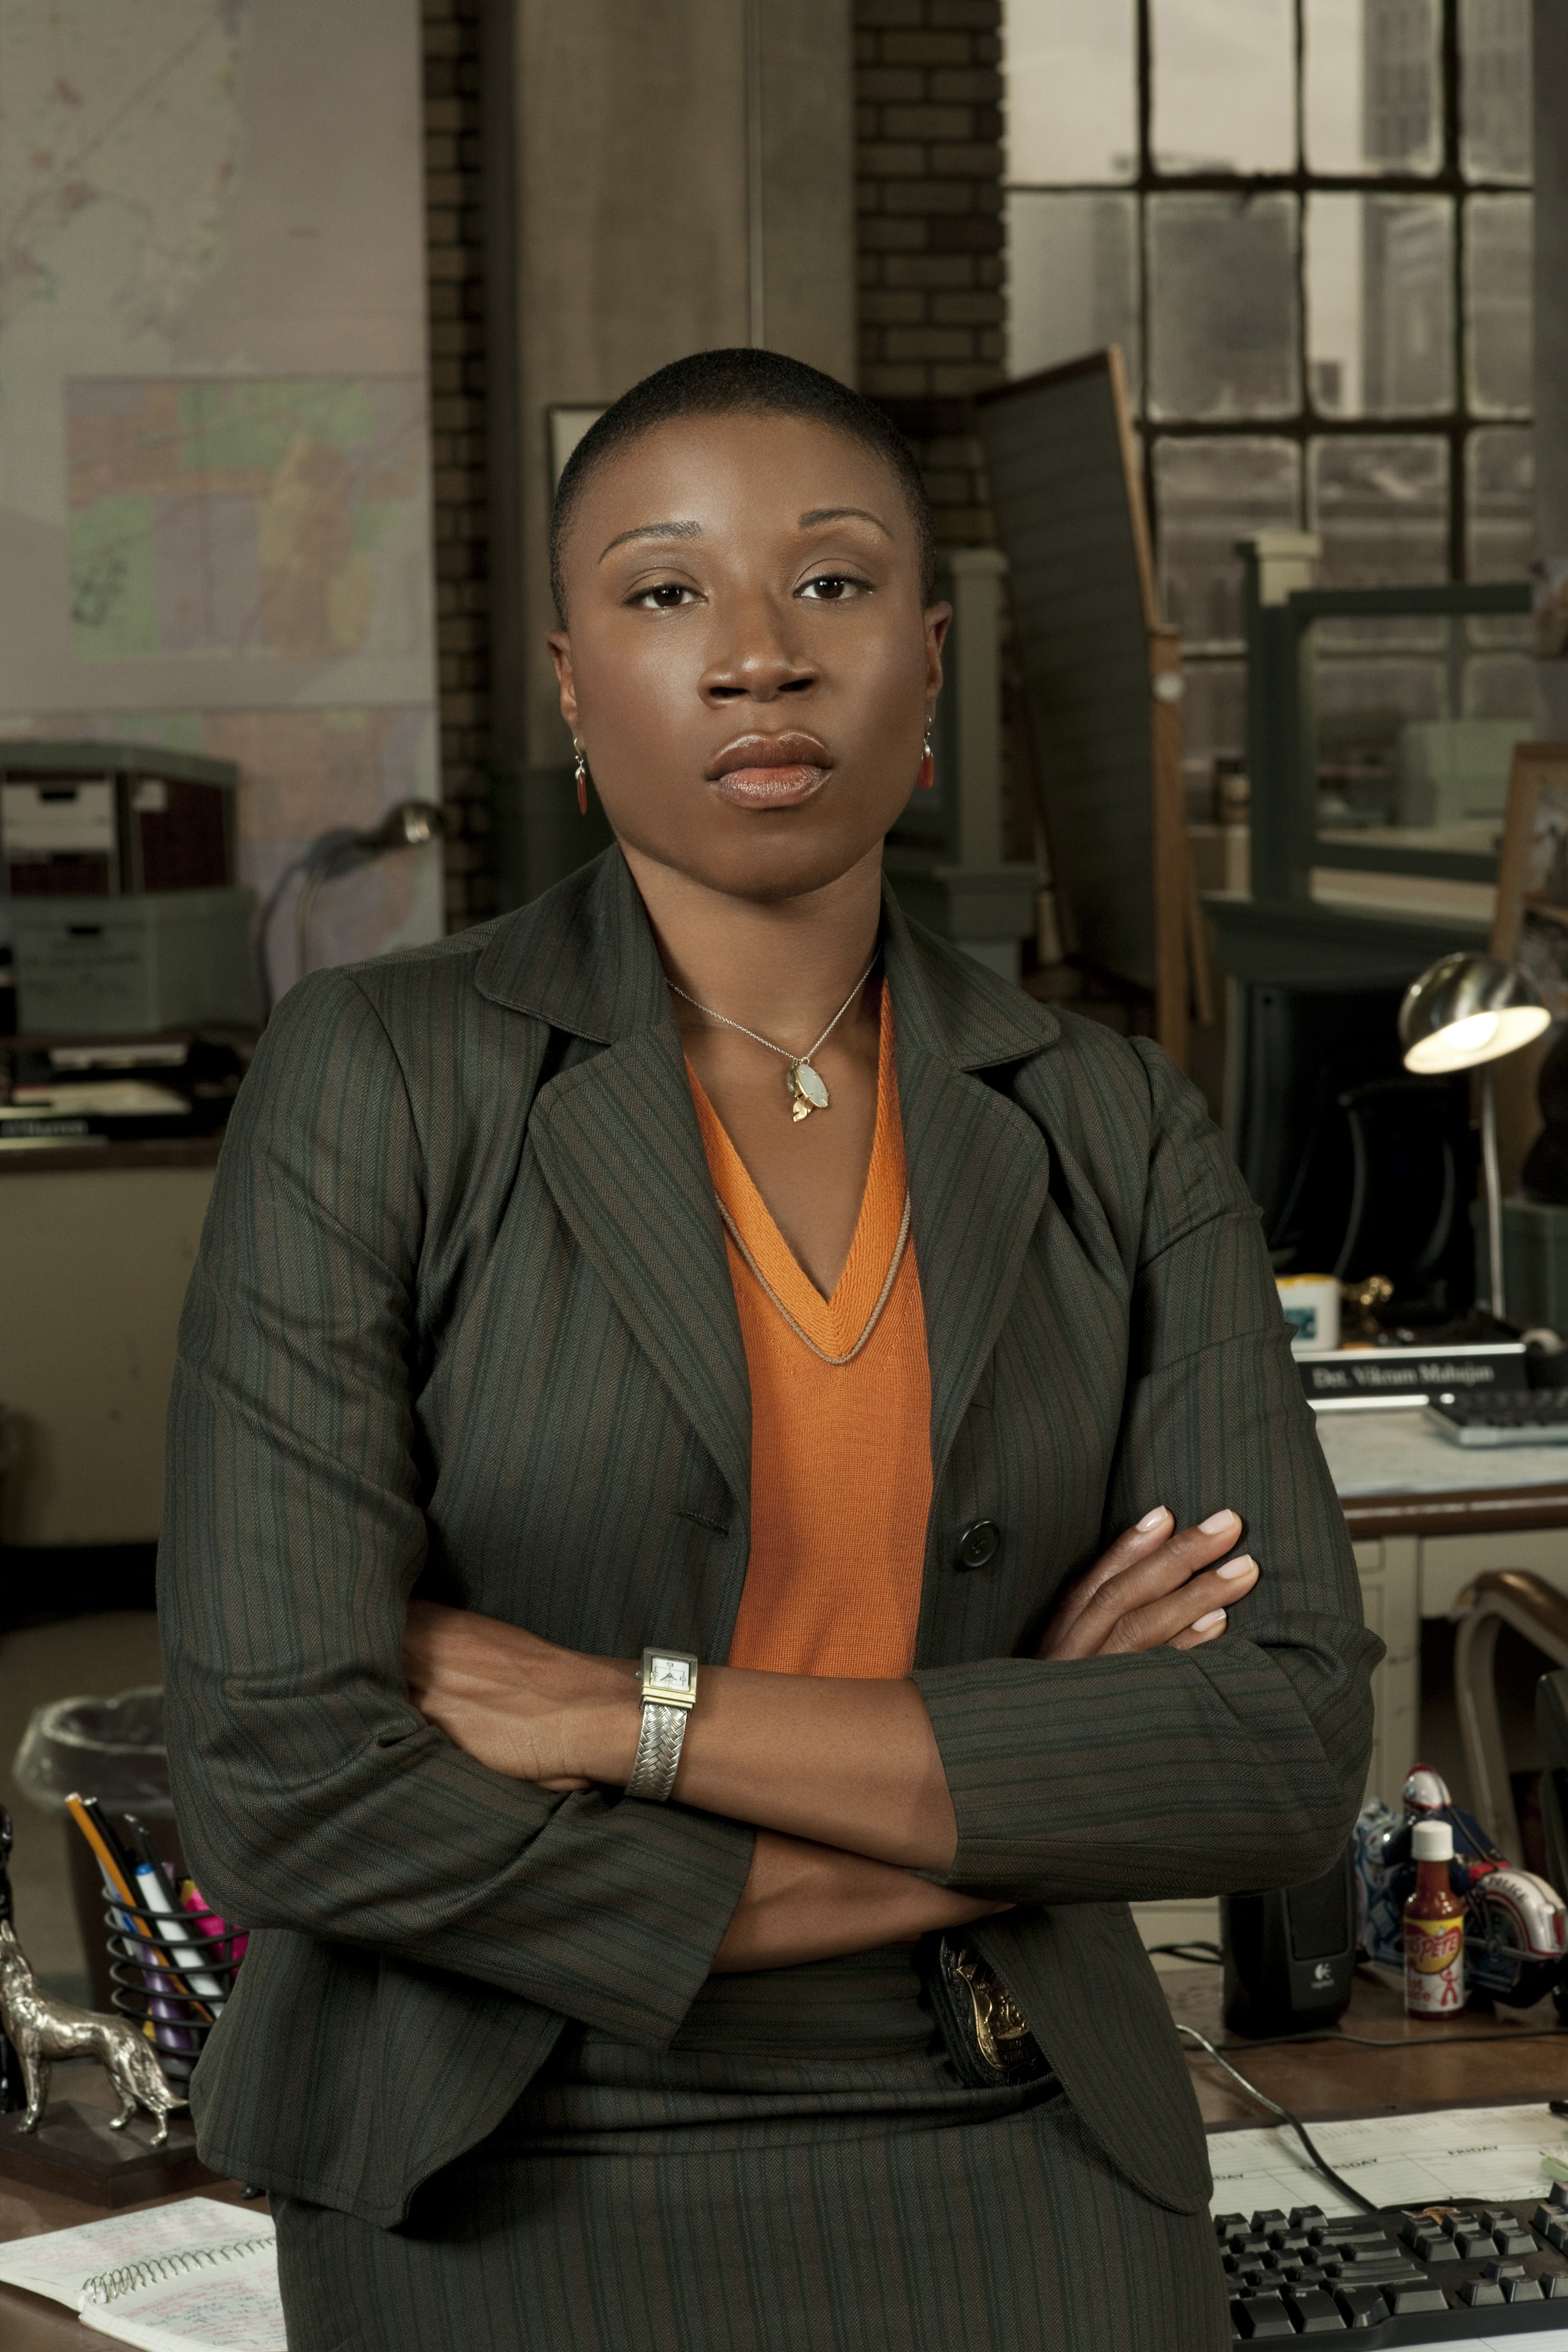 Aisha hinds Wallpaper 1 With 2000 x 3000 Resolution ( 1293kB )